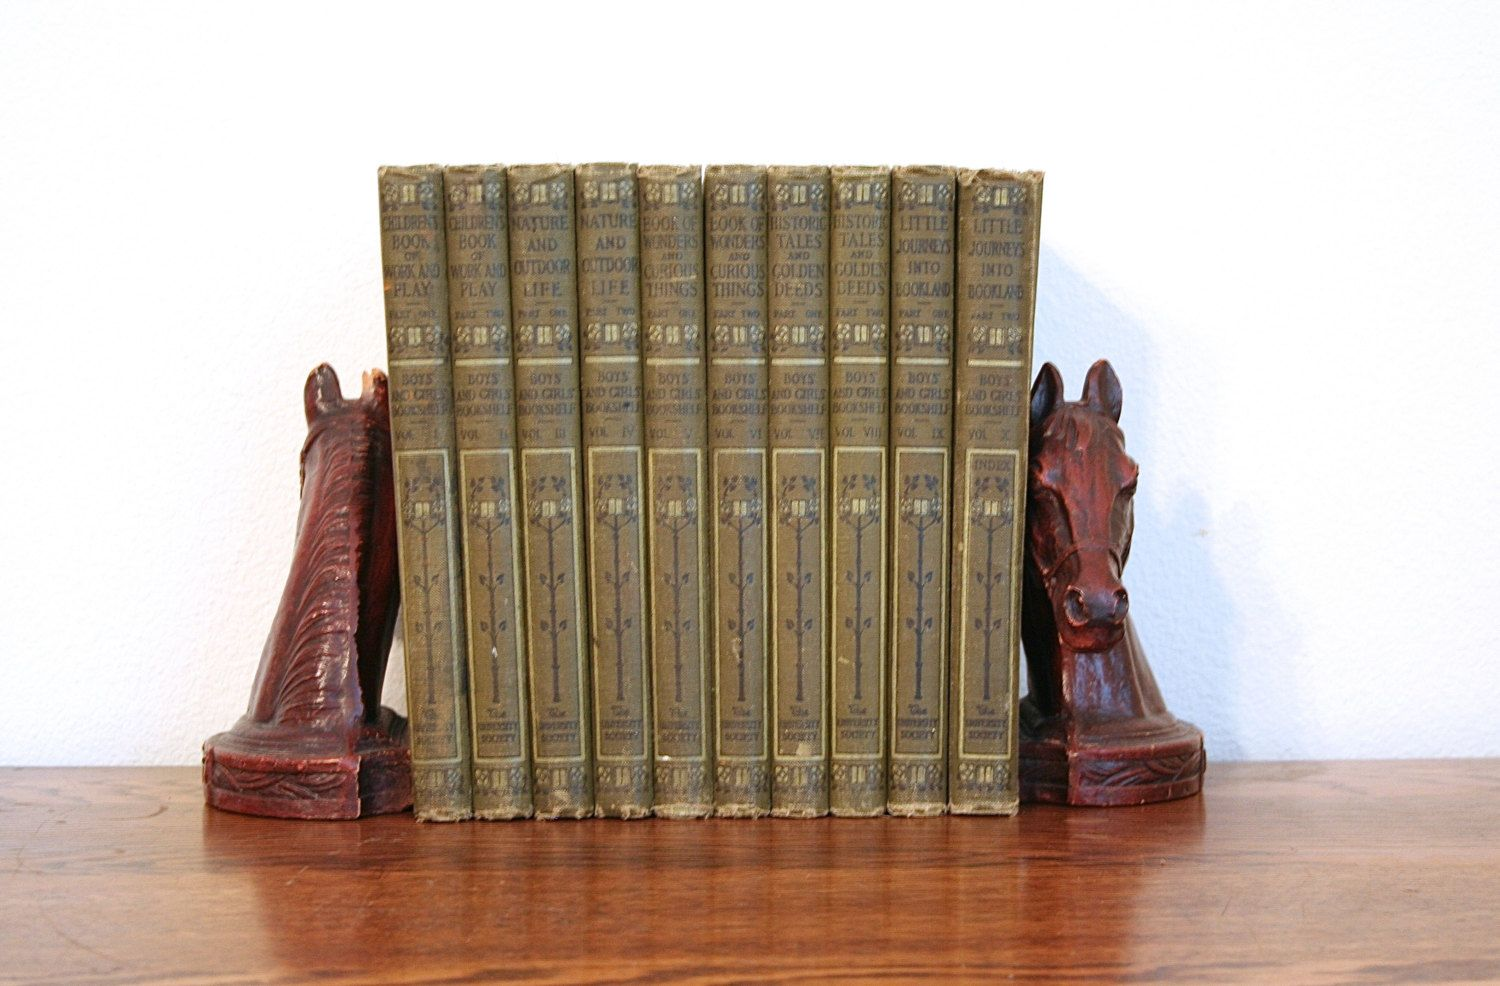 Antique 1912 Boys And Girls Bookshelf Complete Ten Volume Set Illustrated Hardcover Collectible By PacificBlueBooks On Etsy